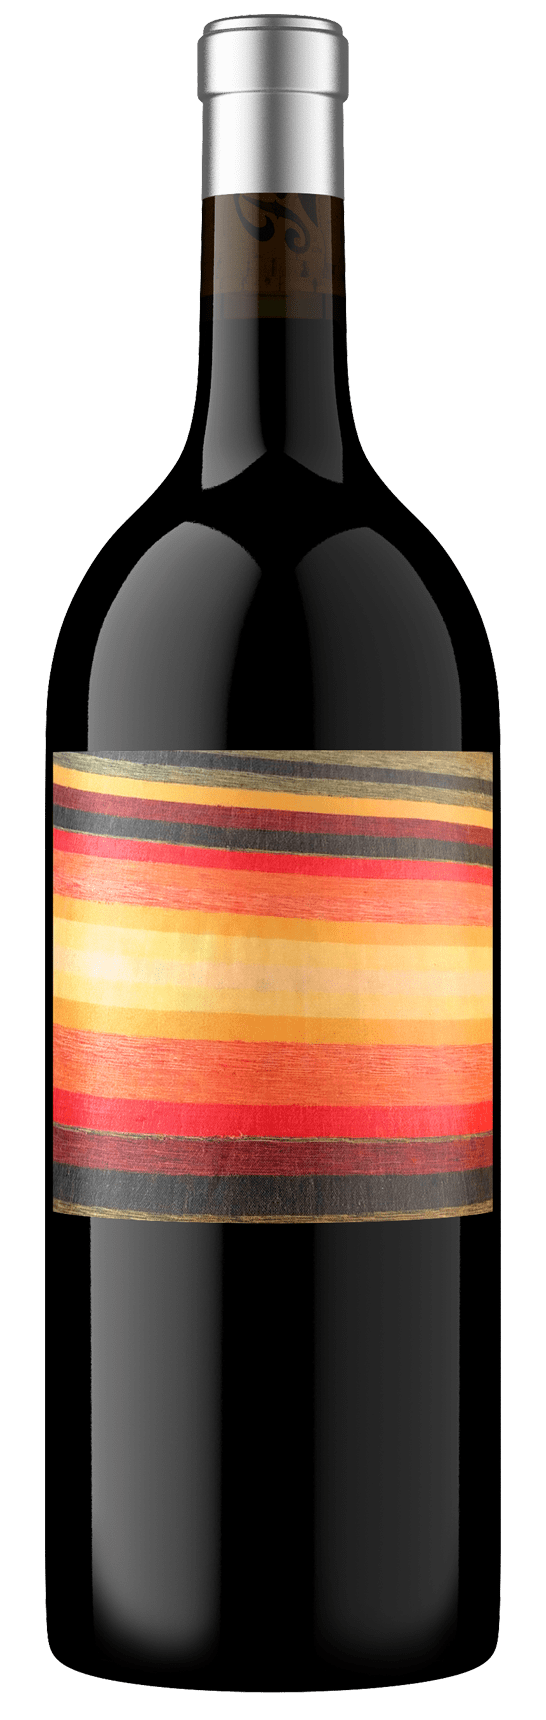 2018 Adios Slowly, Zinfandel, Dry Creek Valley Magnum (1.5 l)